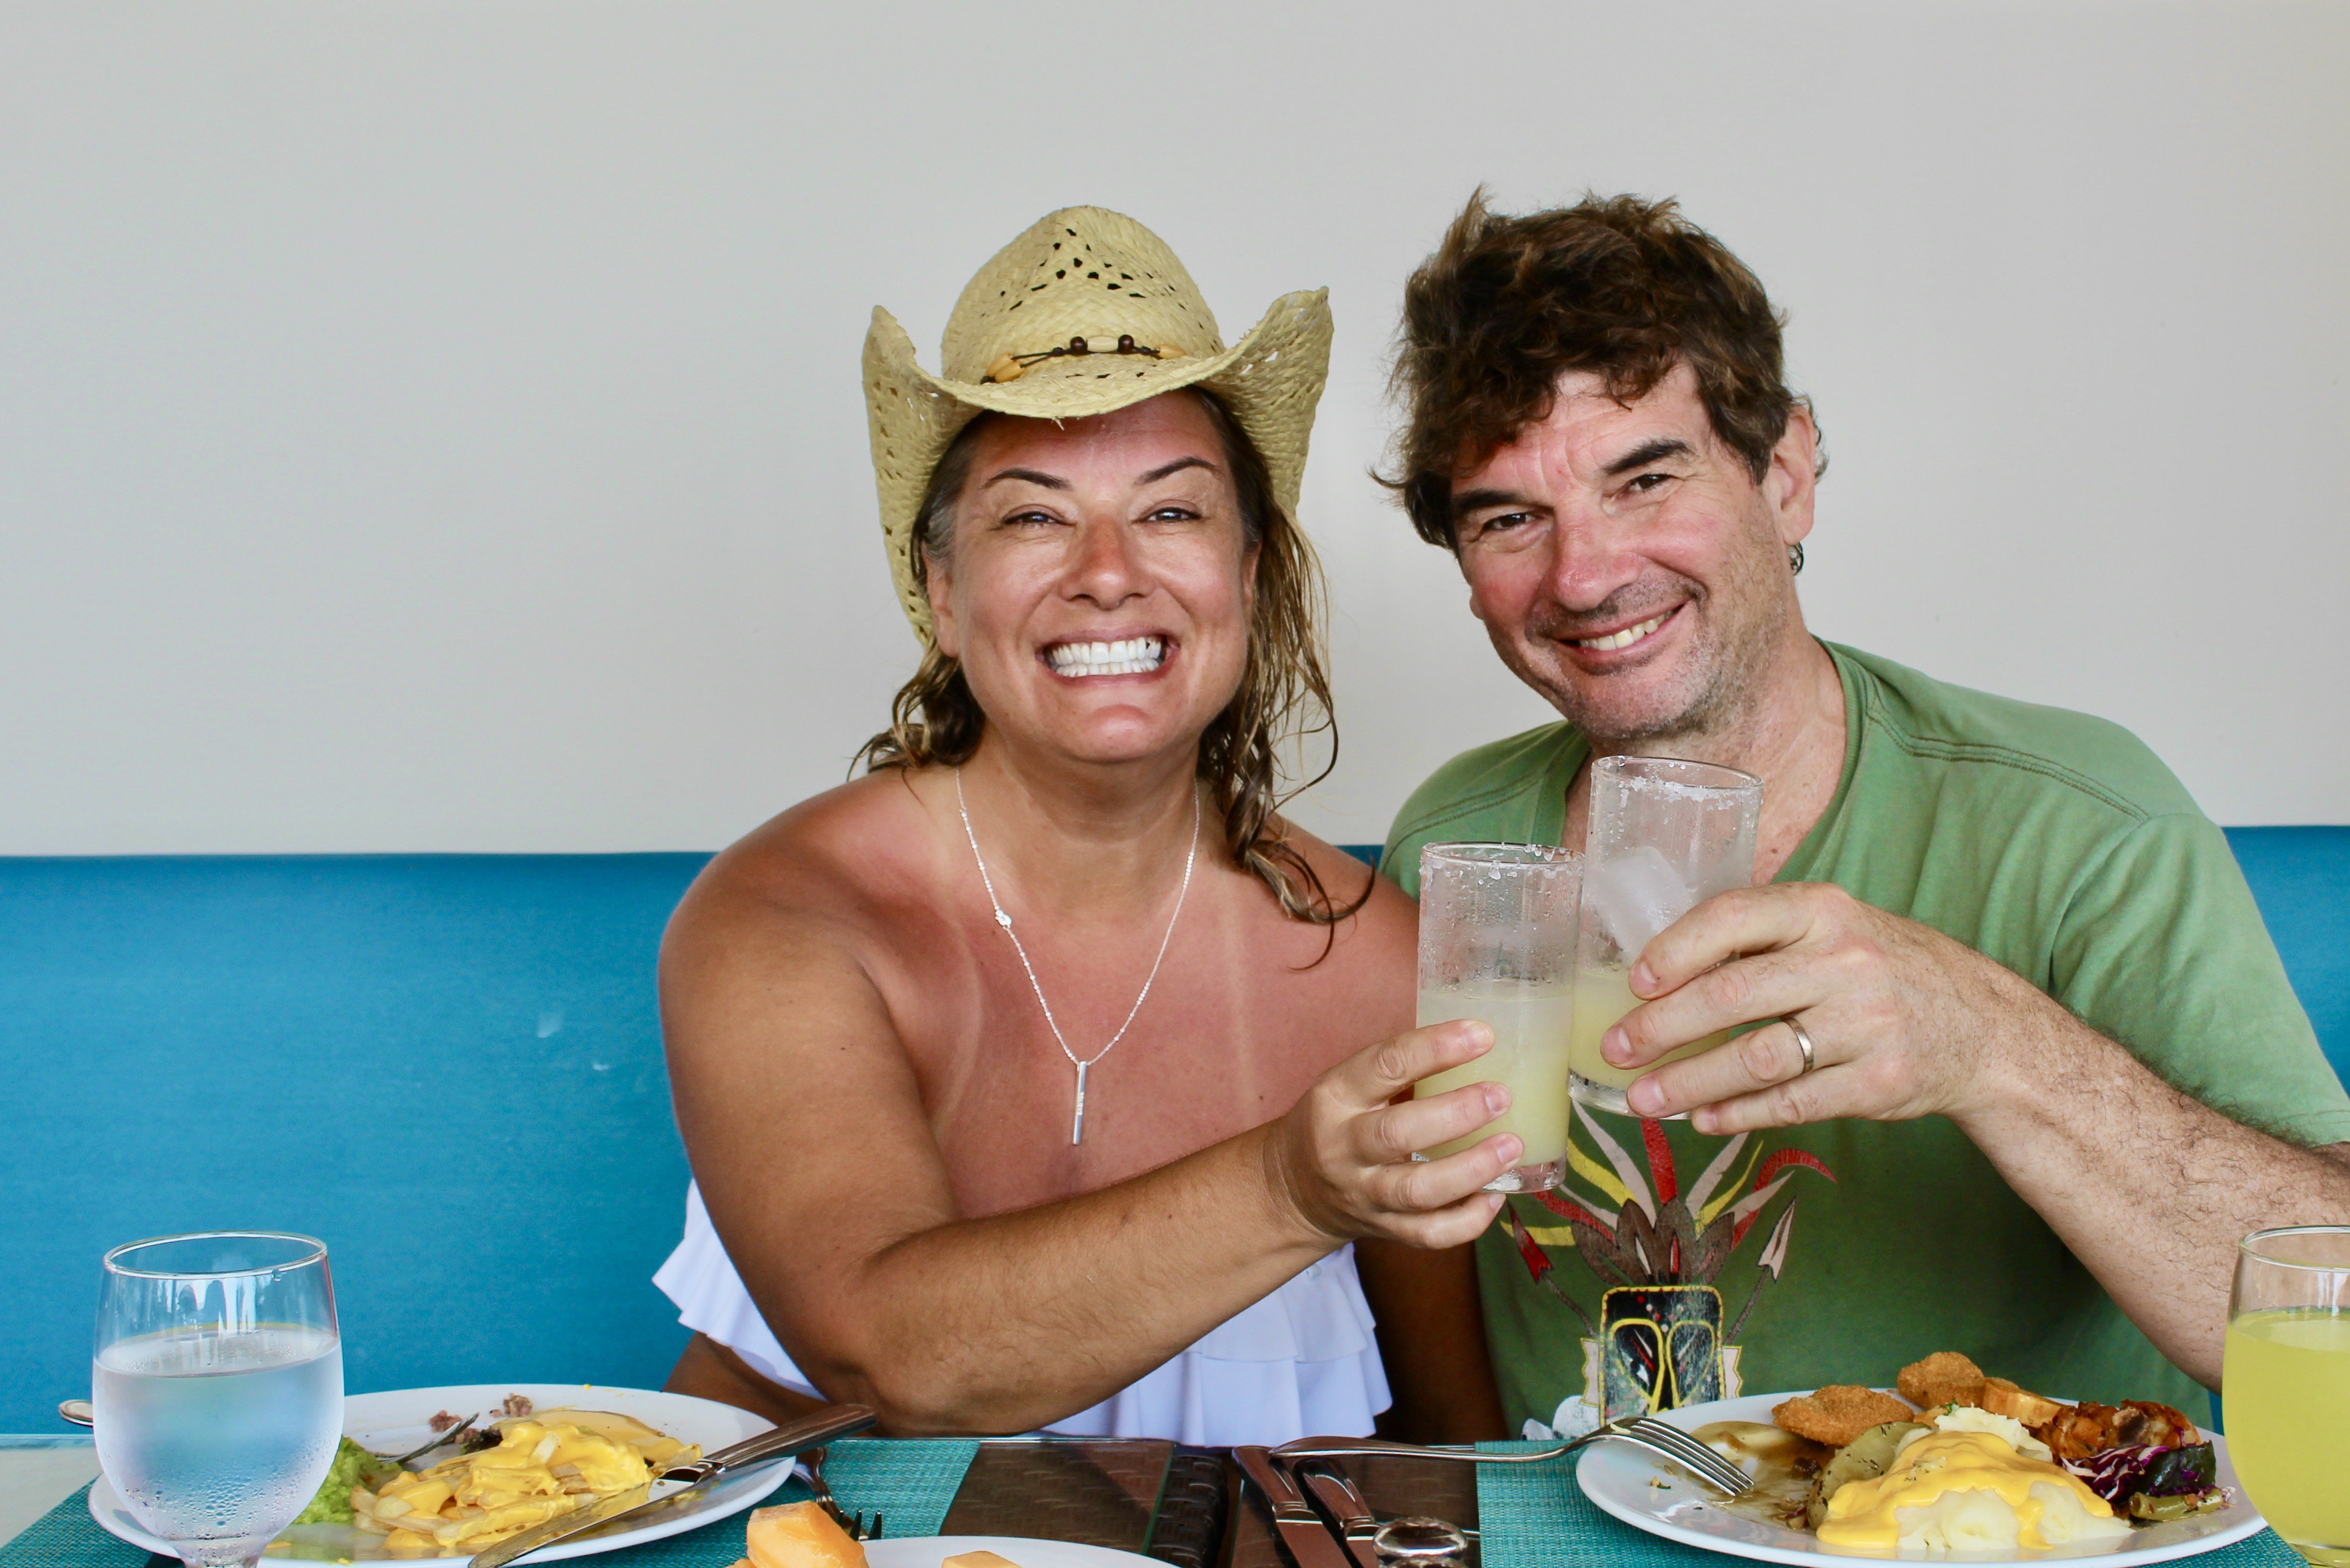 2019 - December - Tangolunda Beach, Huatulco, Mexico - Barcelo Huatulco - Buffet lunch with free drinks!! Our first margaritas!!